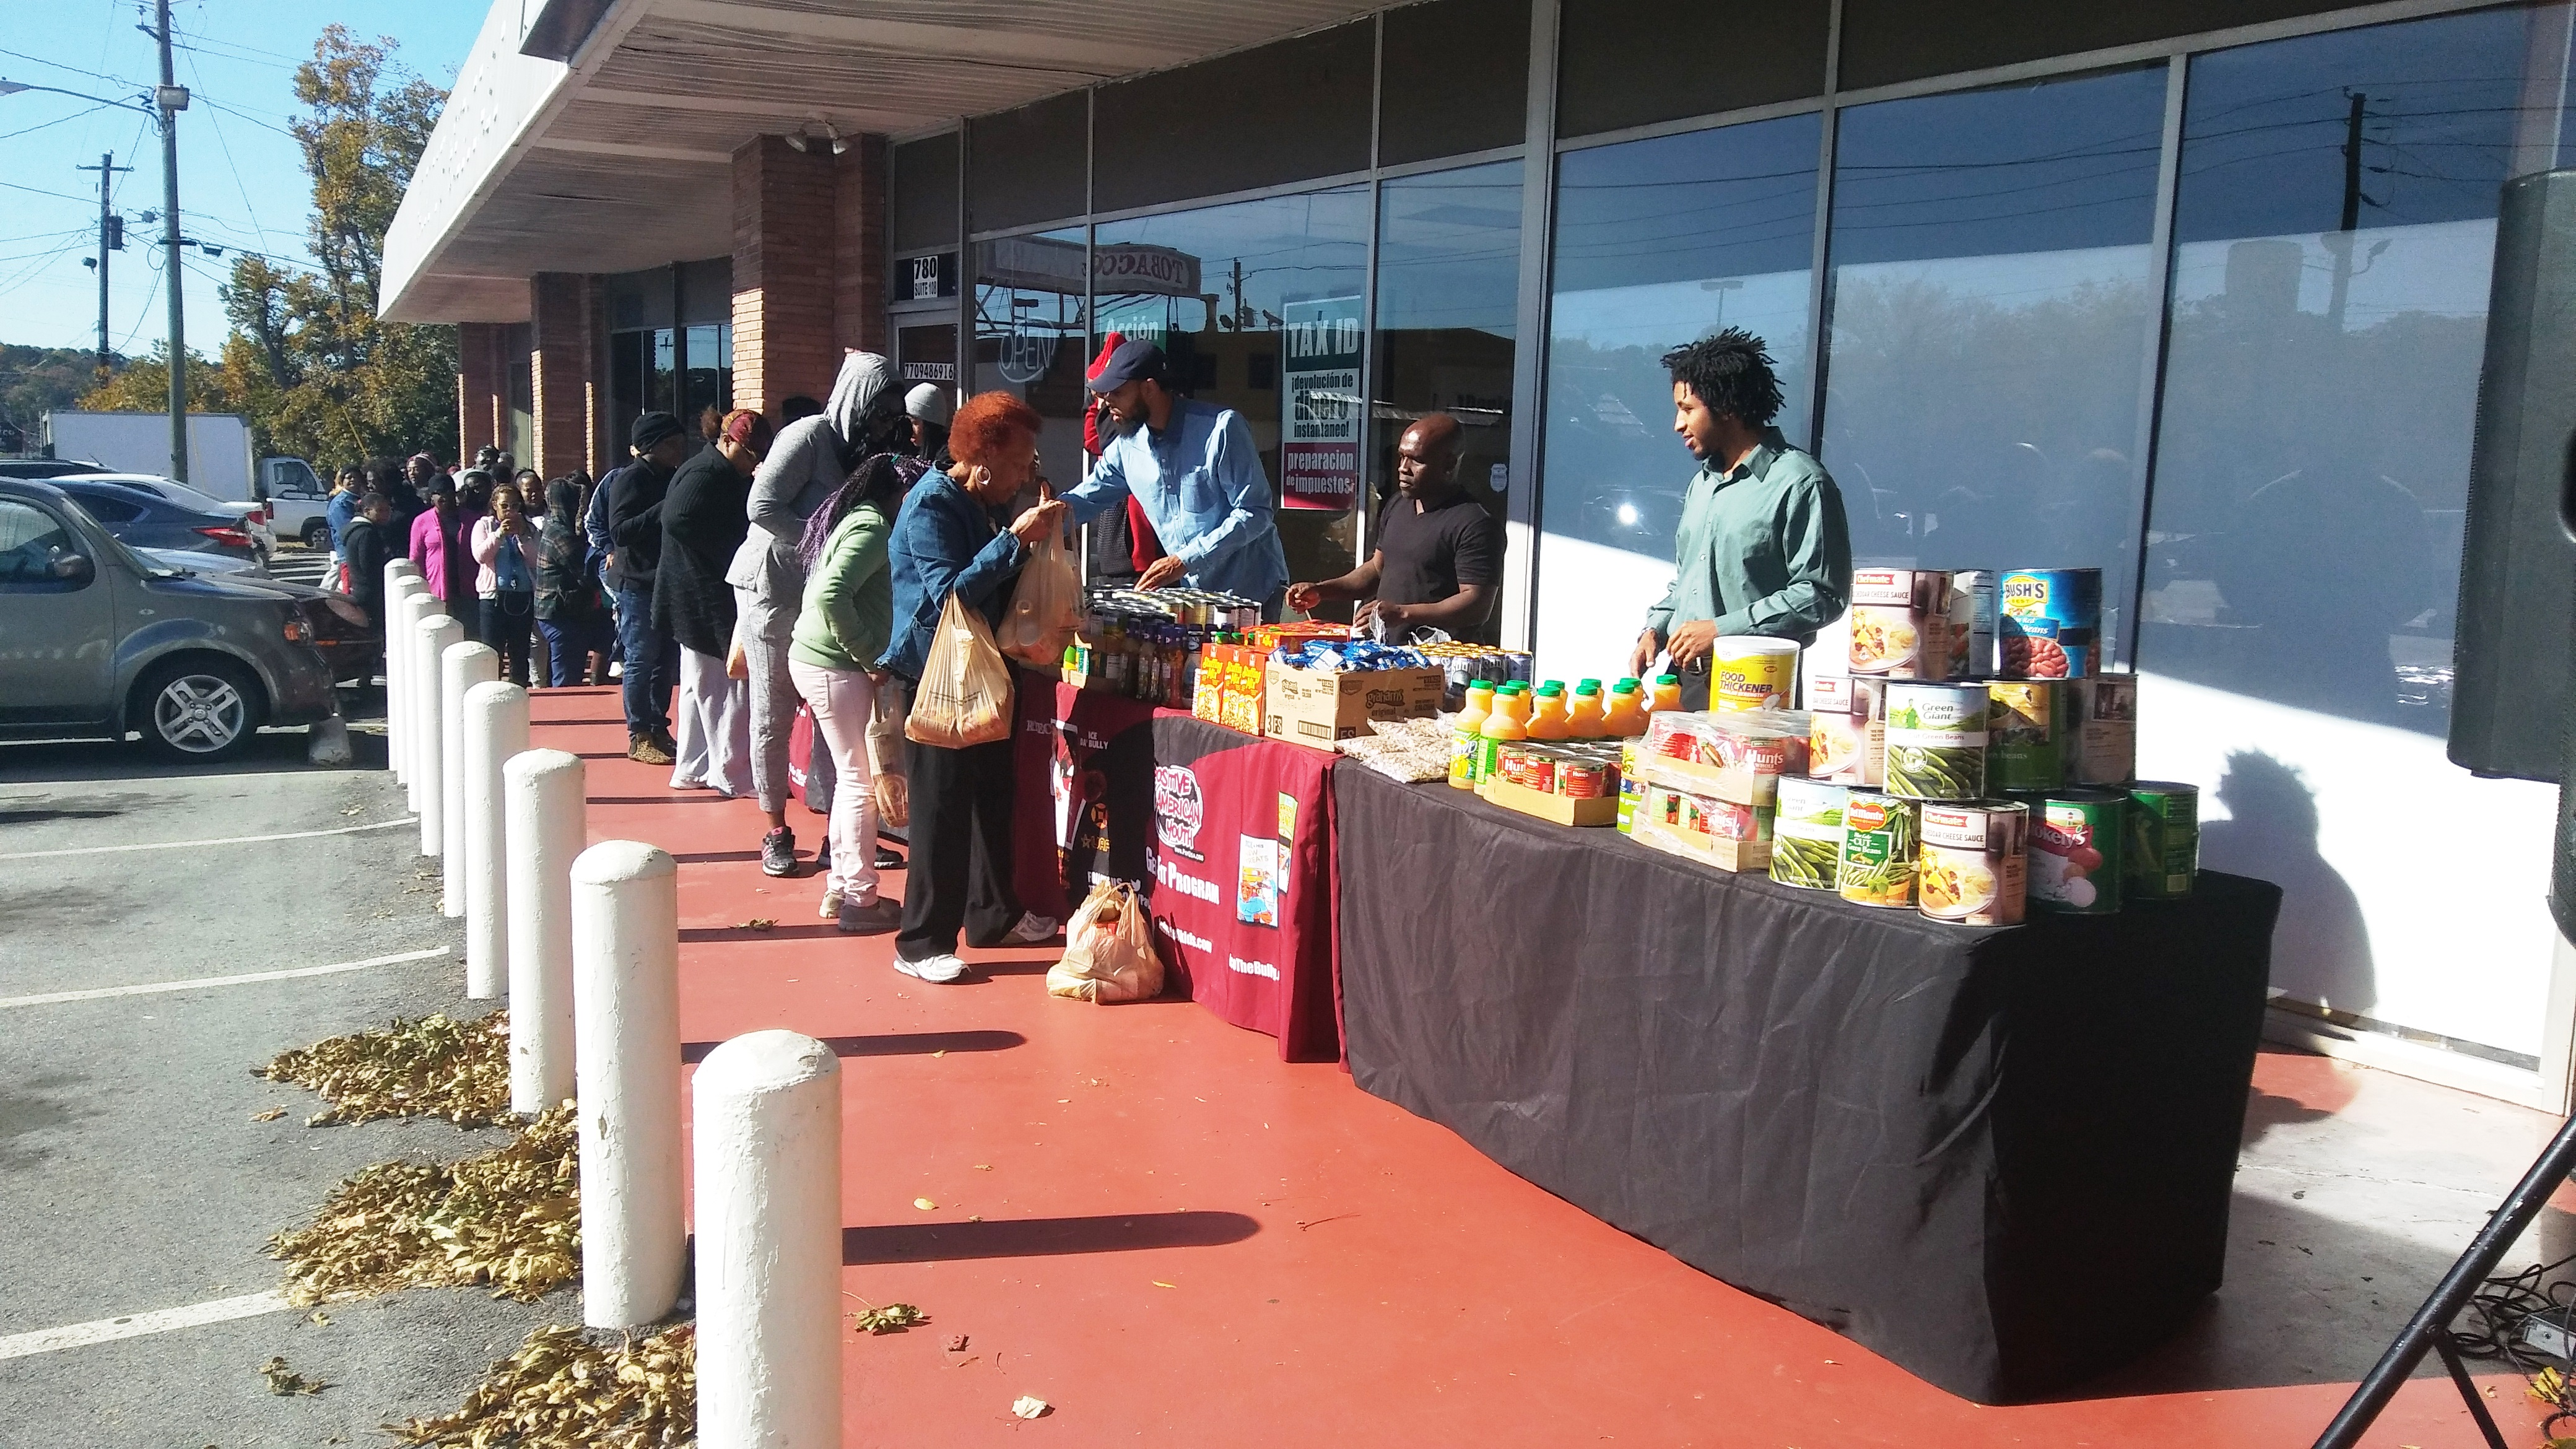 reec-host-grocery-give-away-payusa-11-20-2